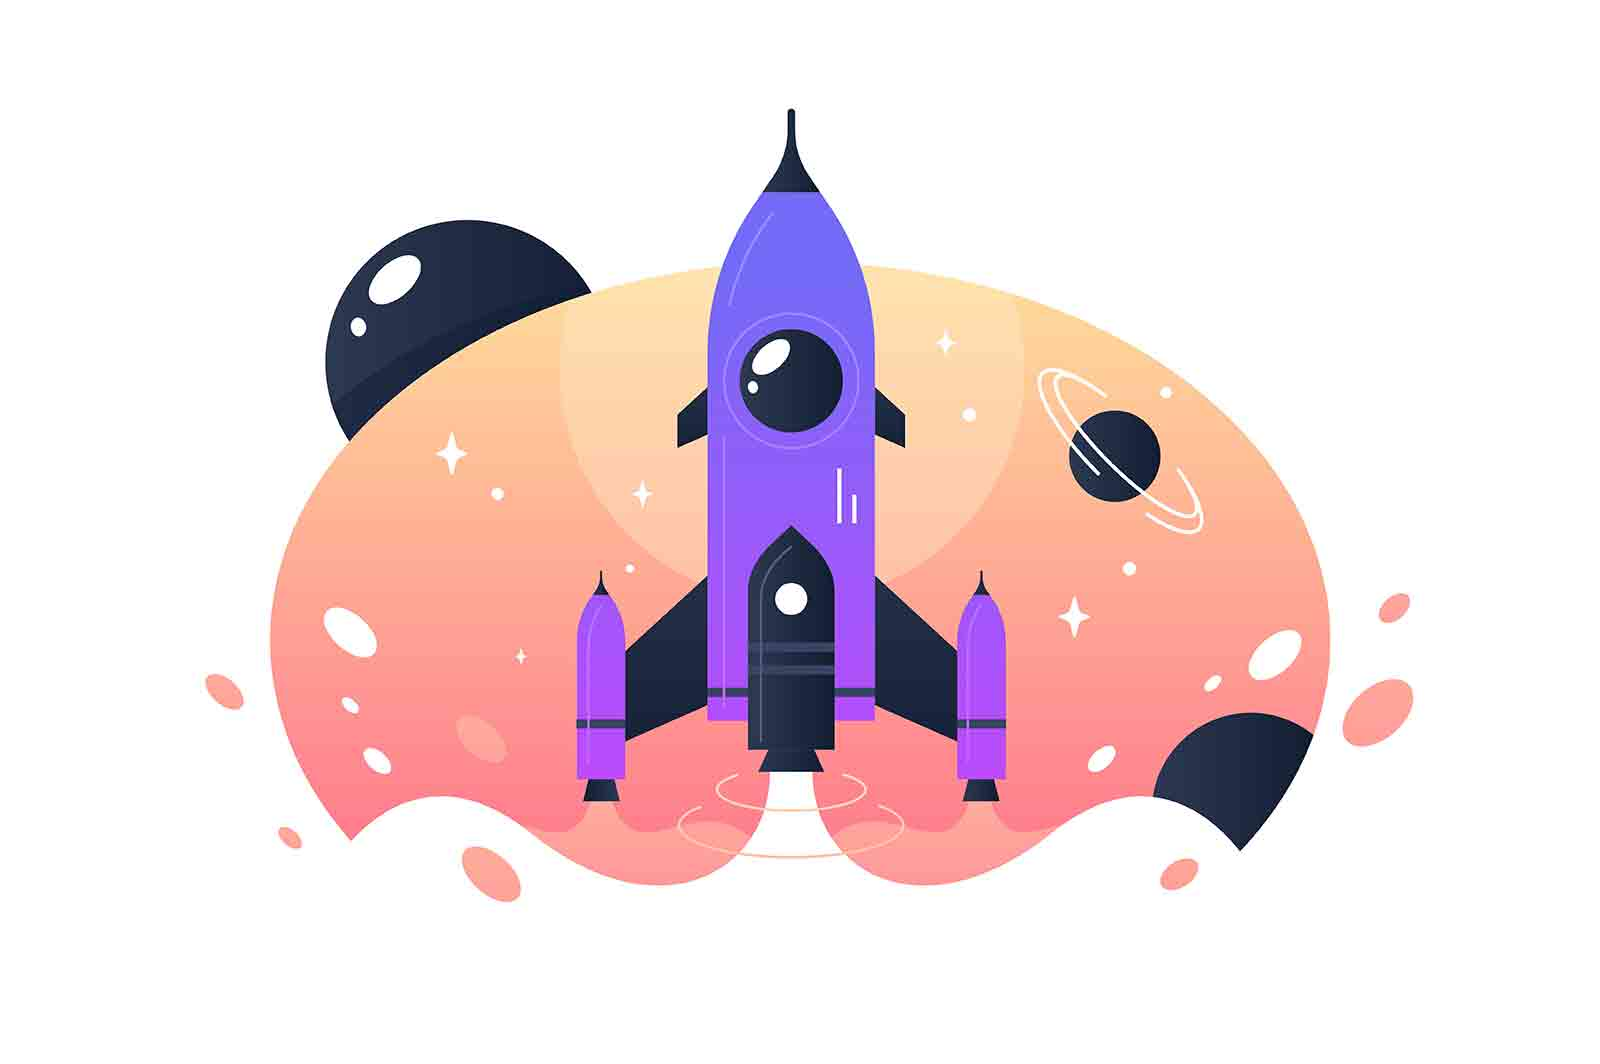 Startup rocket from earth into space and flights among stars. Concept aircraft for science, expeditions and tourism. Vector illustration.